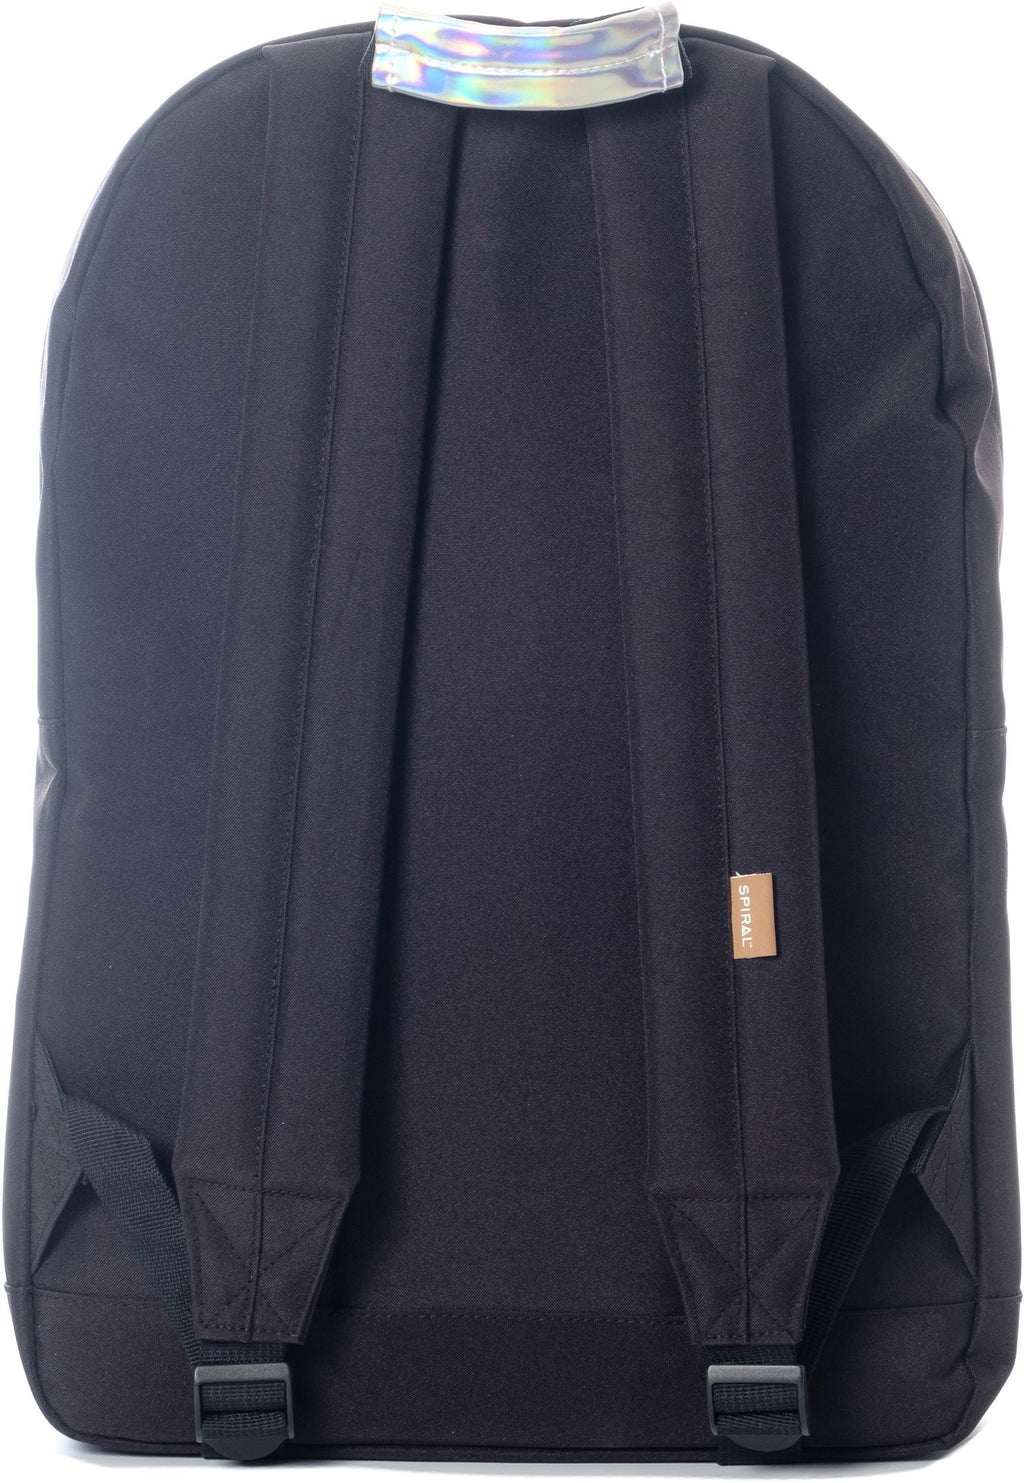 Spiral Rave Pocket Backpack Bag Black